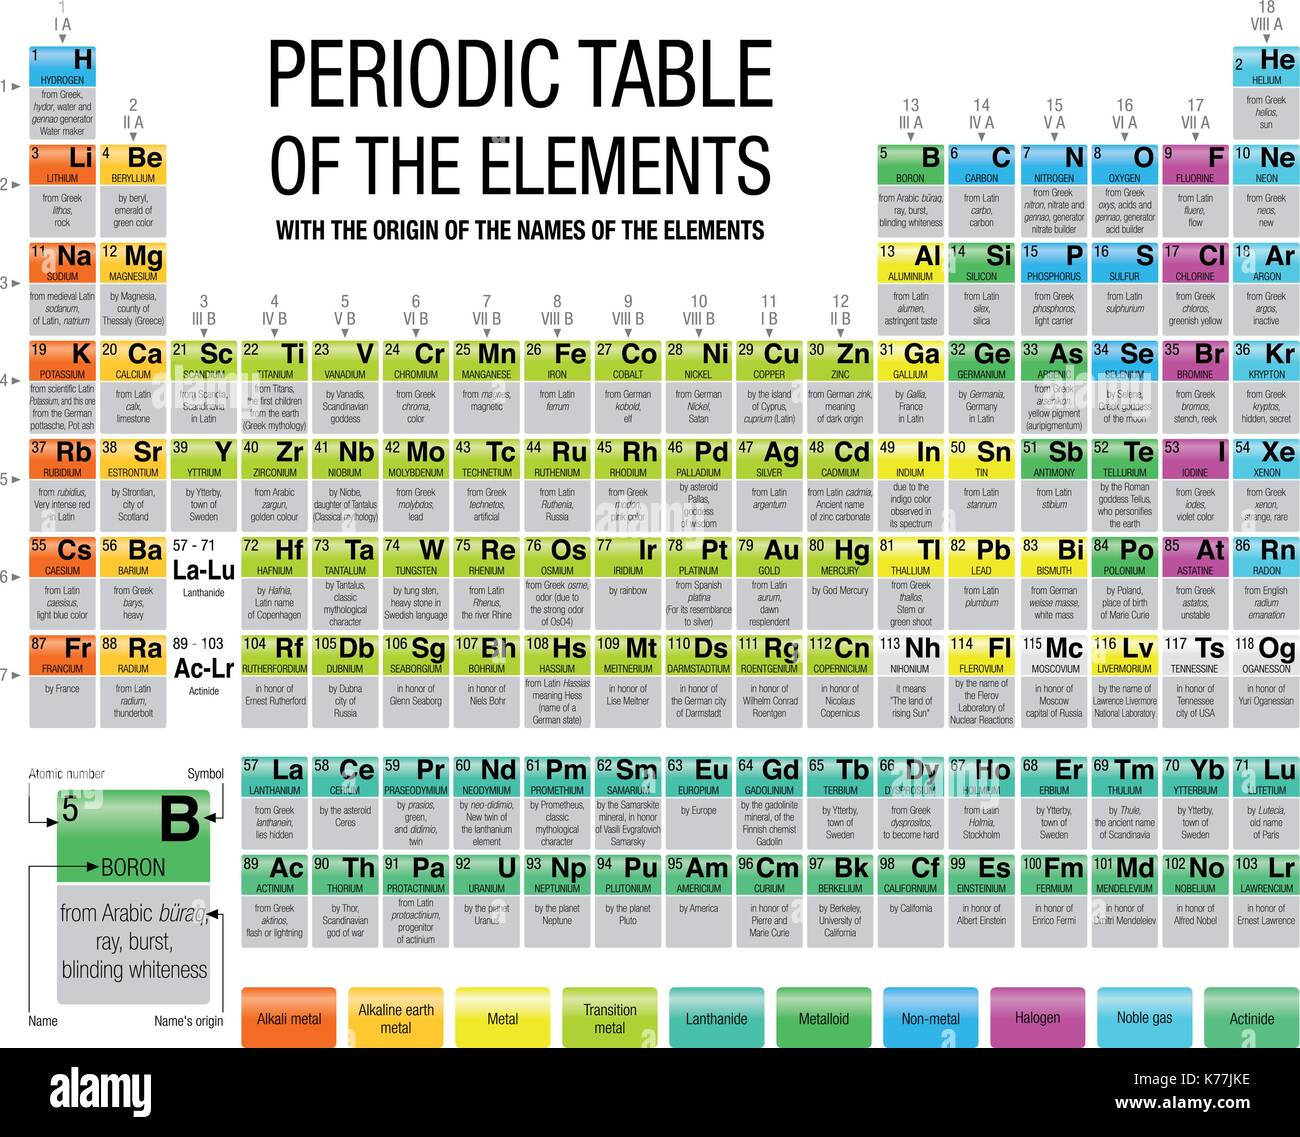 periodic table of elements greek names images periodic table and periodic table element names origin images - Periodic Table Of Elements Greek Names